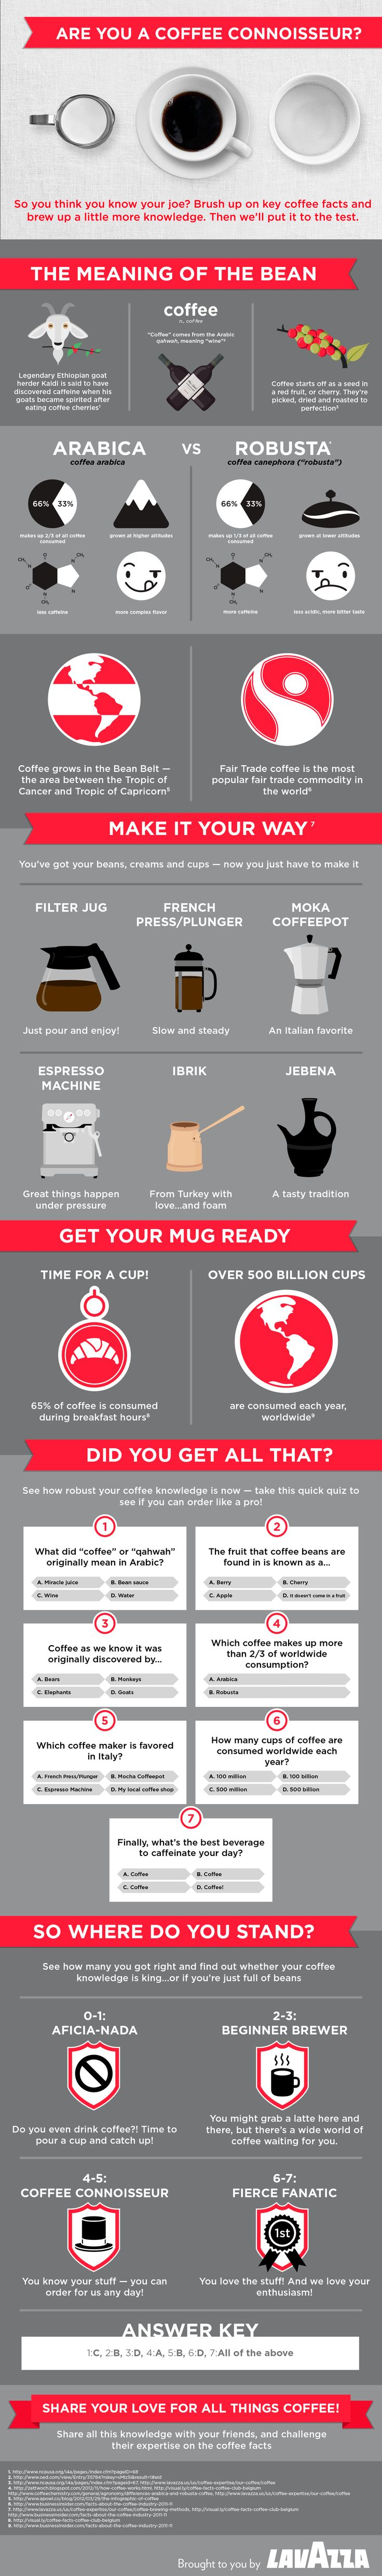 Pull up a chair, pour yourself a cup of Lavazza and test your coffee knowledge from bean to brew with this infographic.